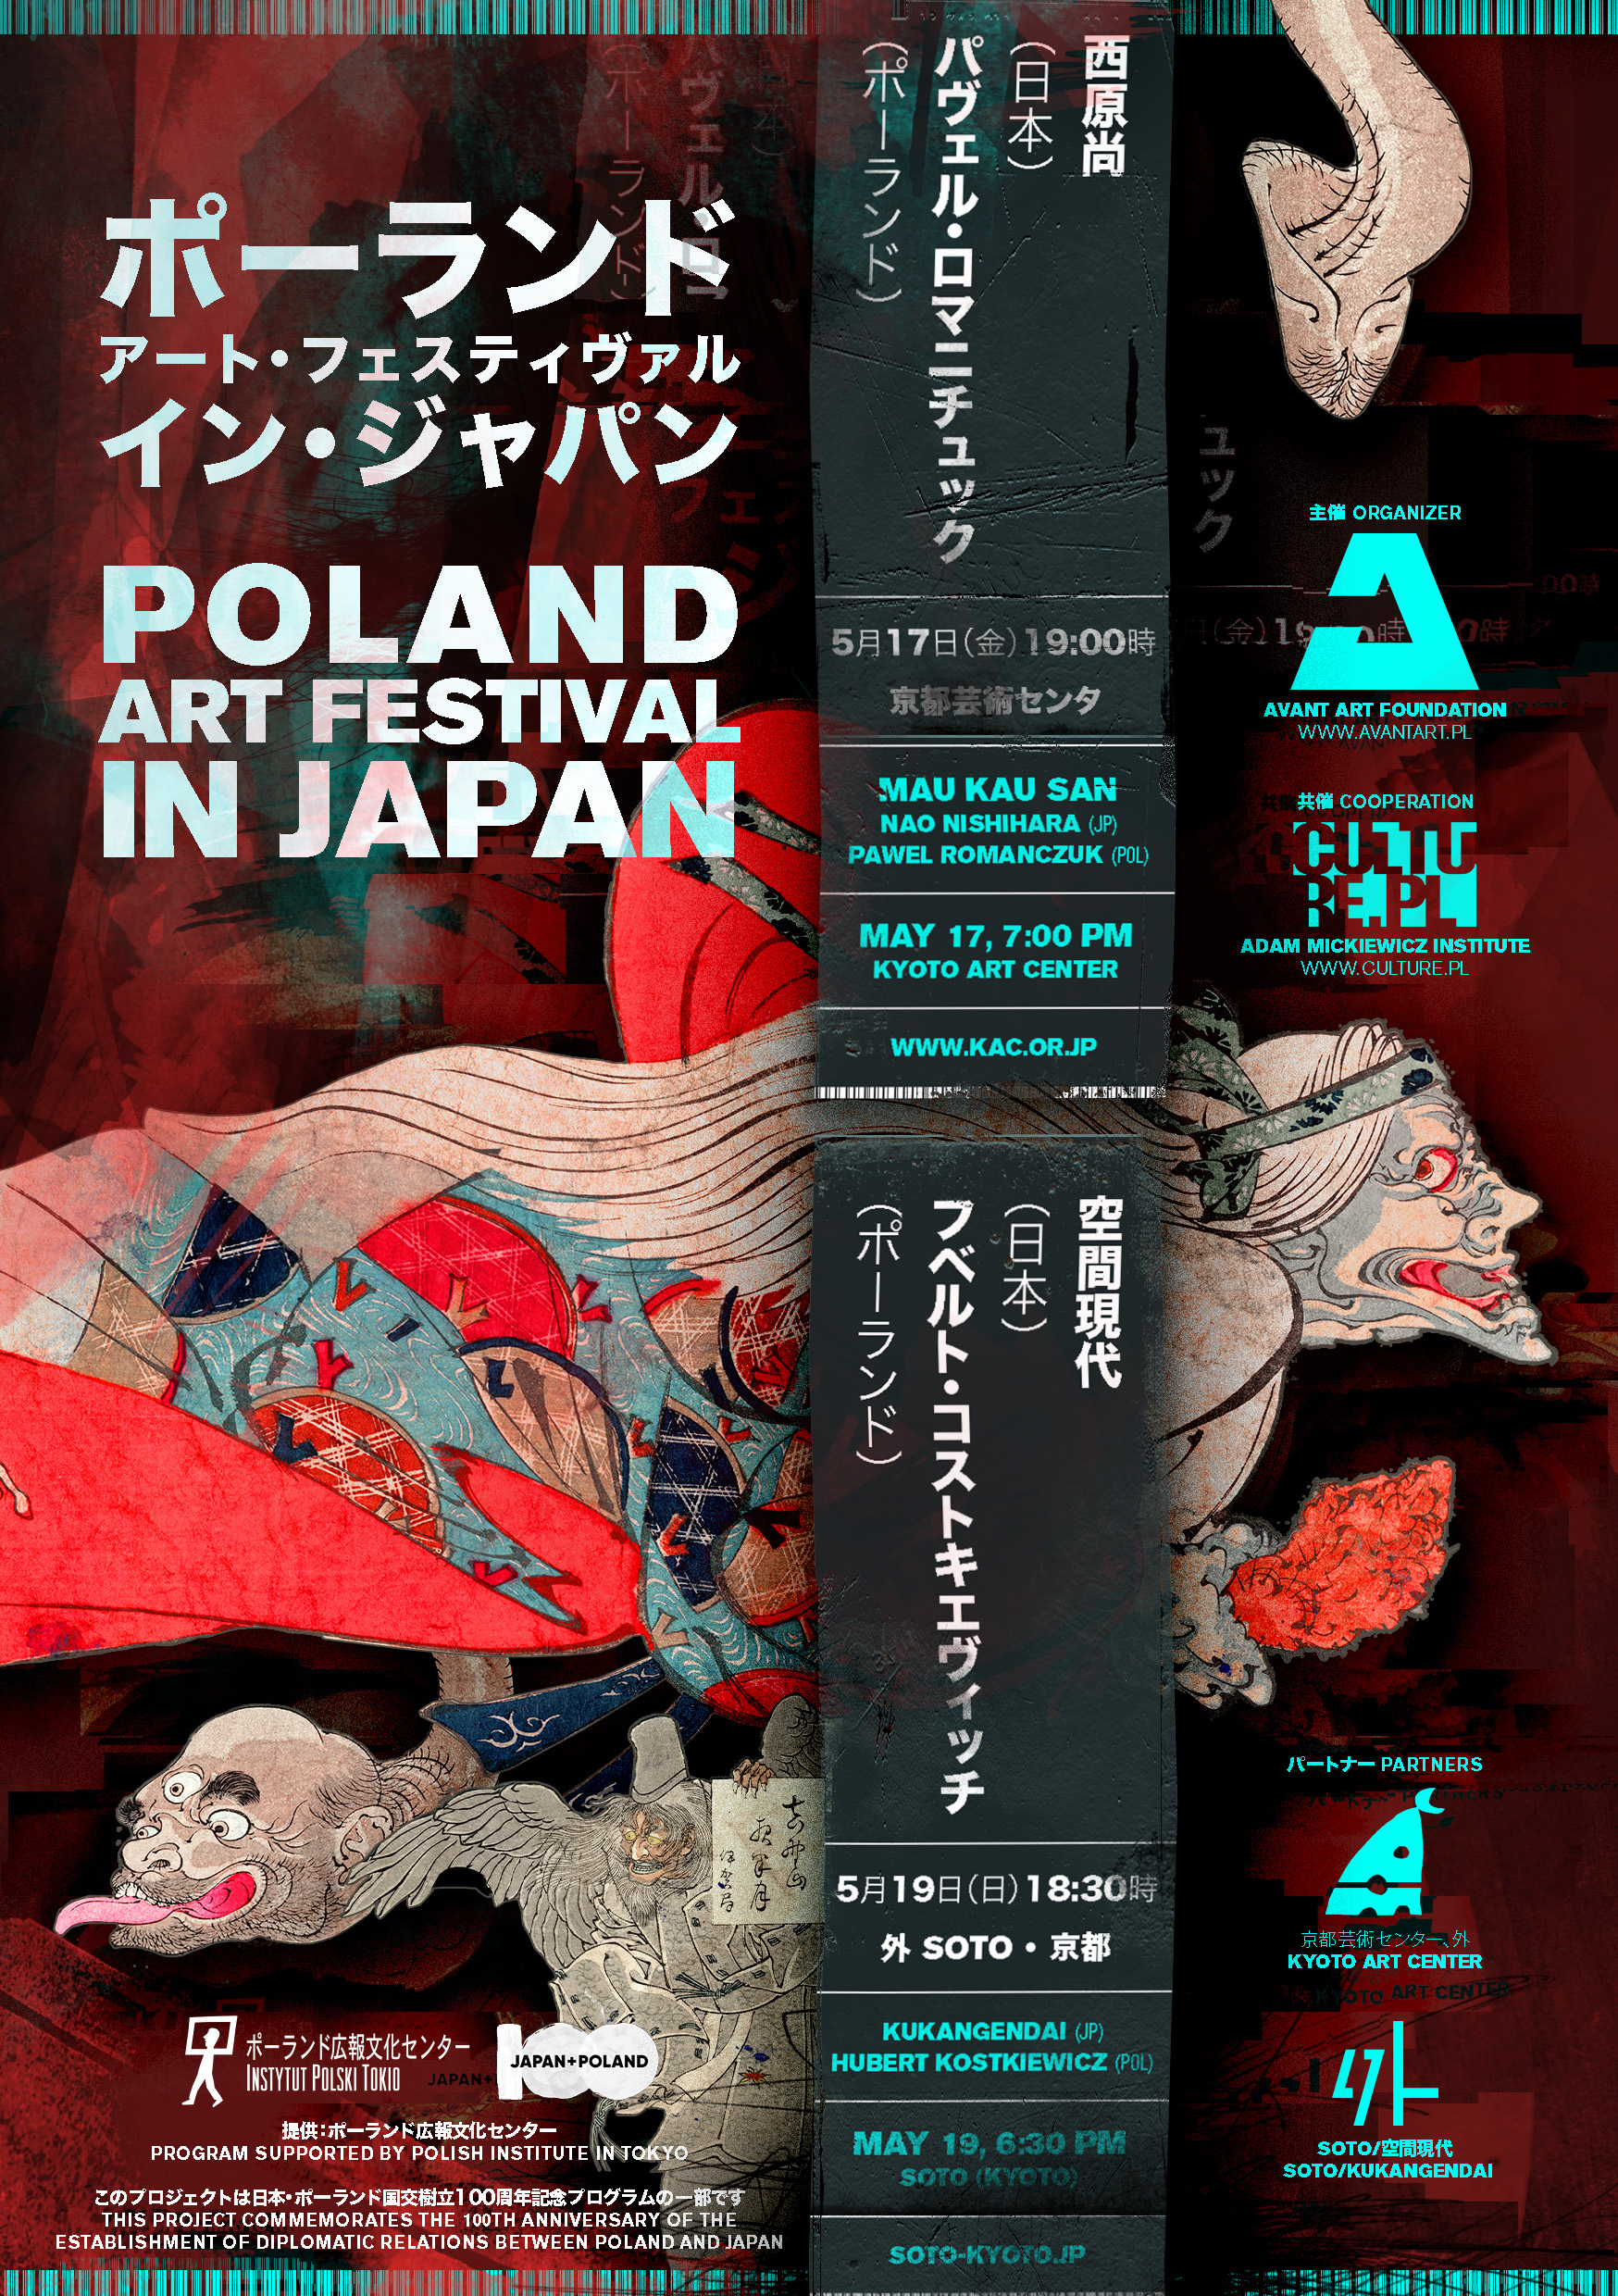 Poland Art Festival in Japan